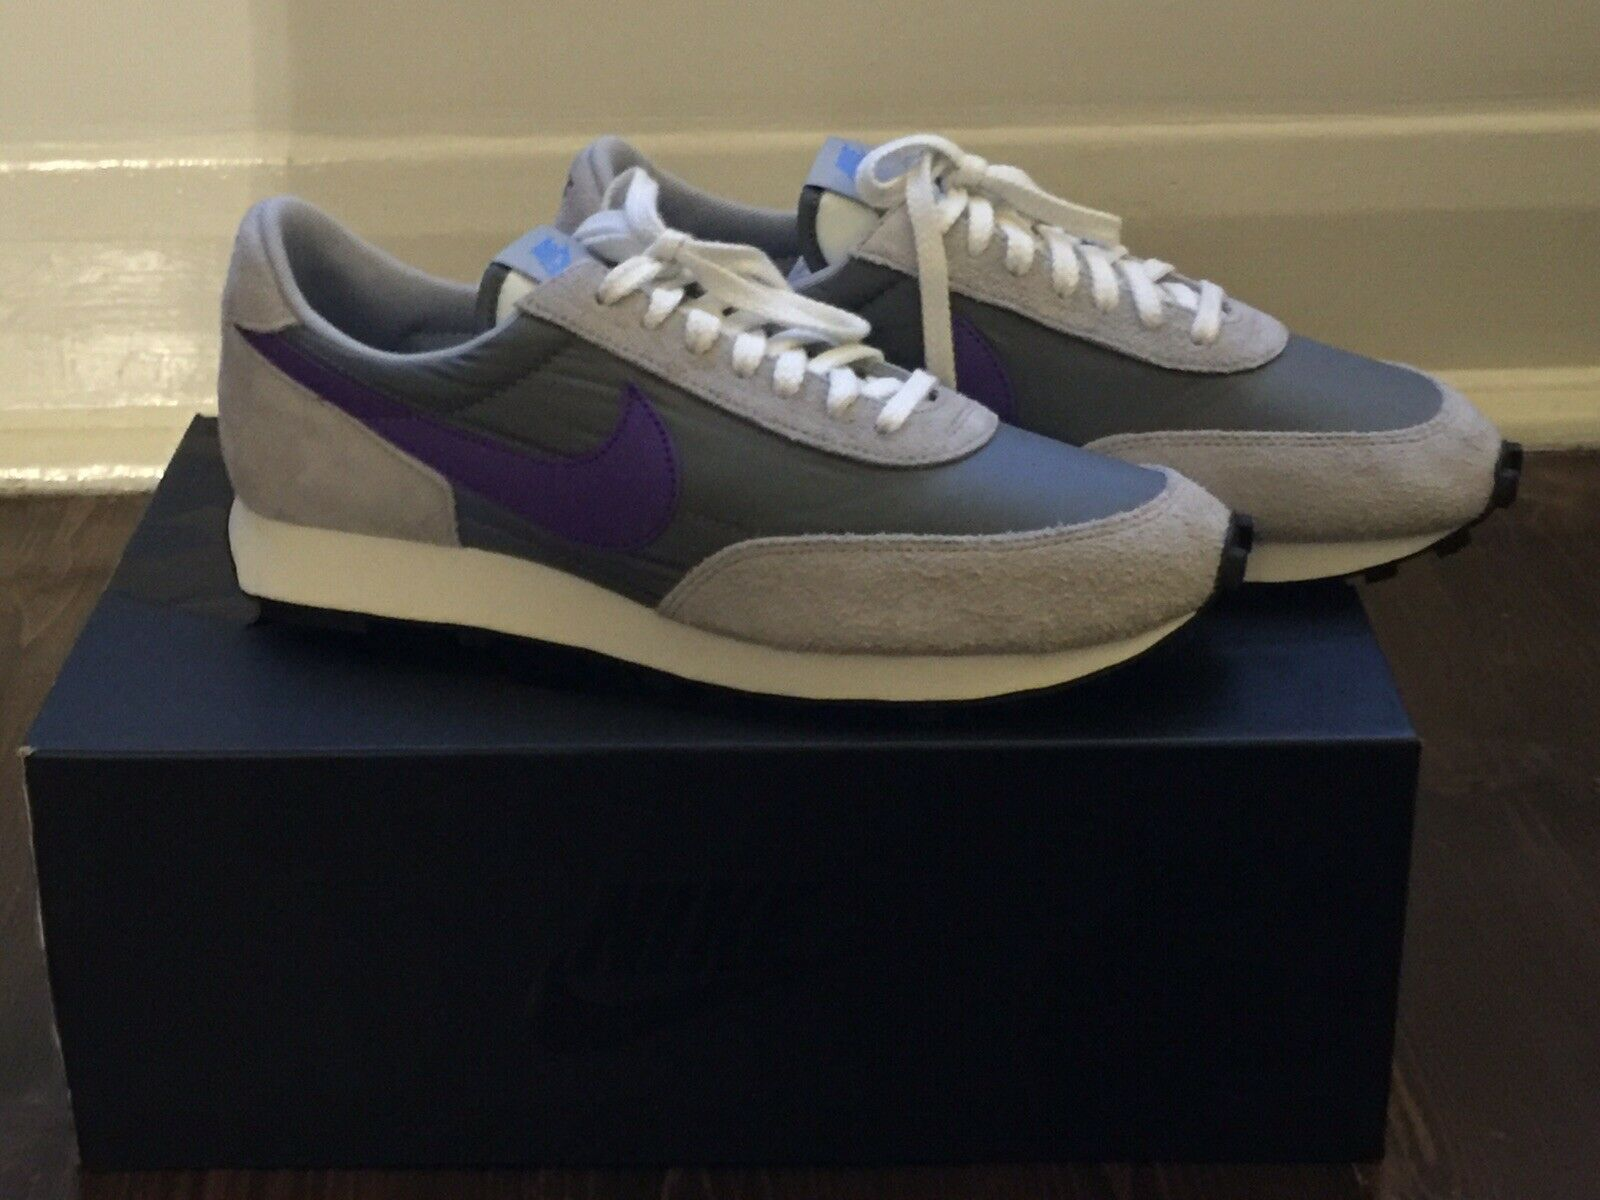 Nike Daybreak Cool Grey Hyper Grape